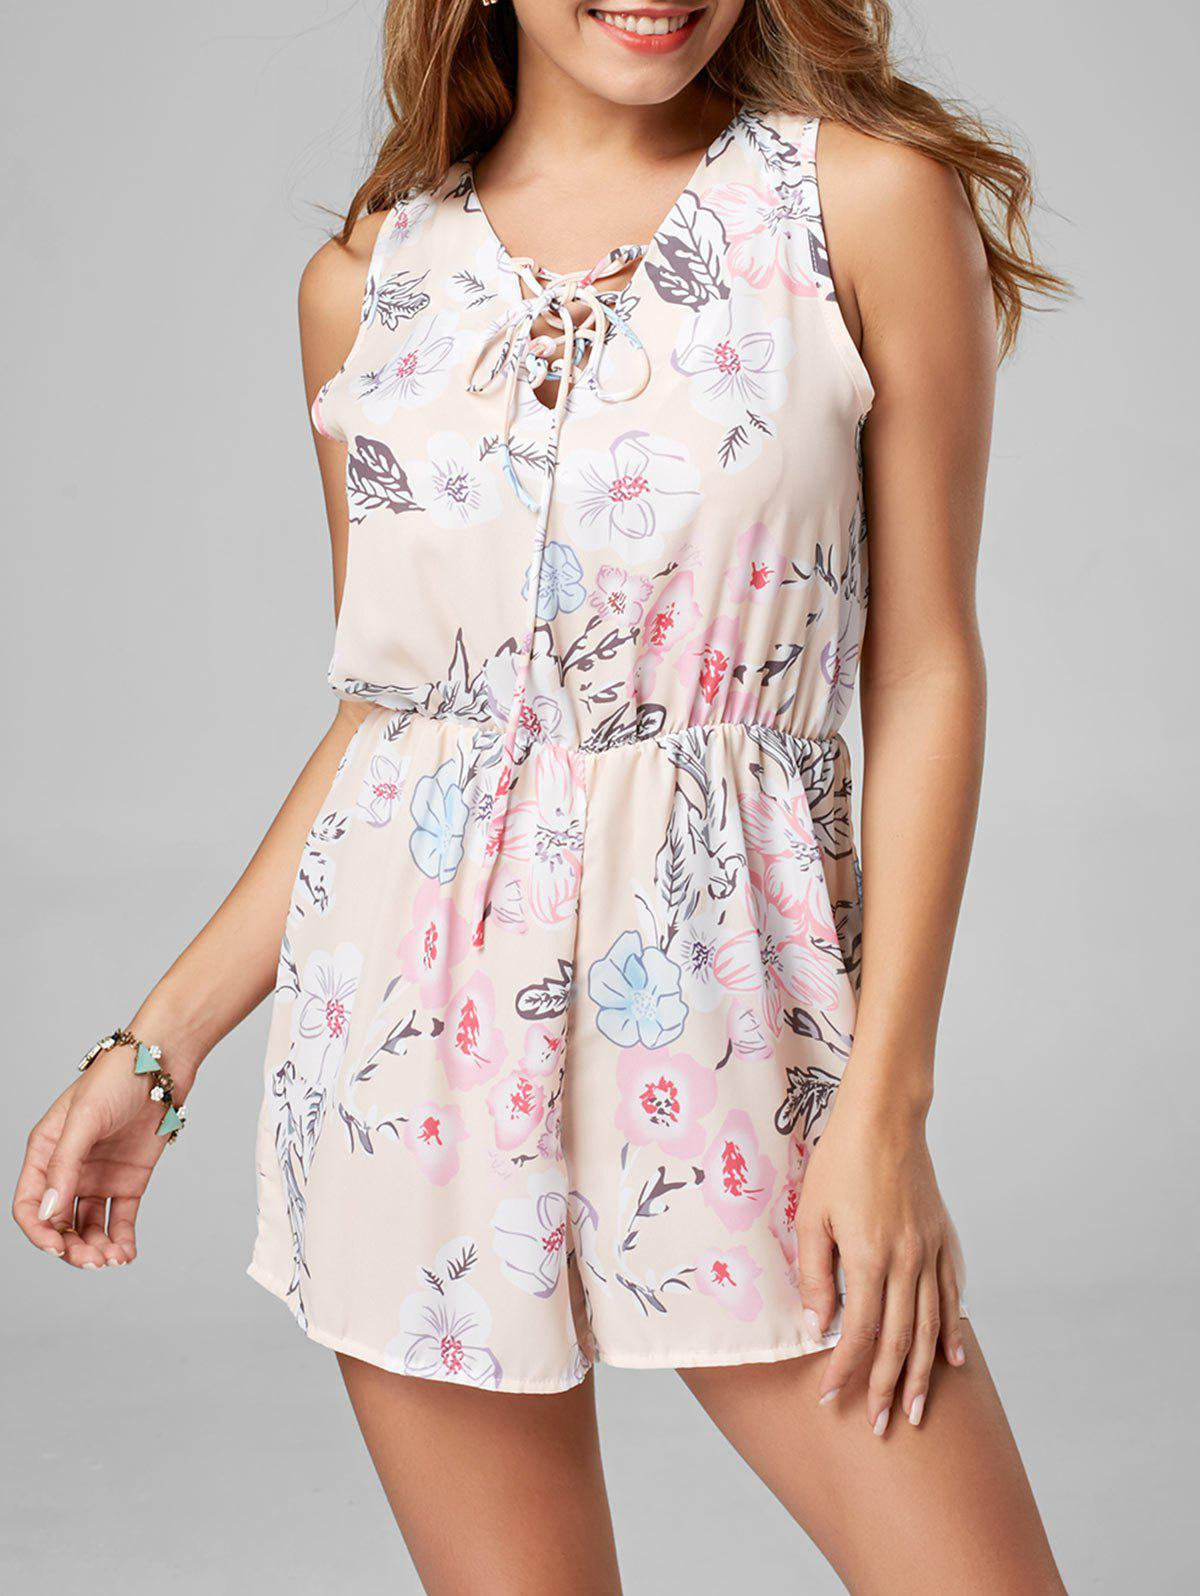 Lace Up Sleeveless Chiffon Floral Romper - PINK S